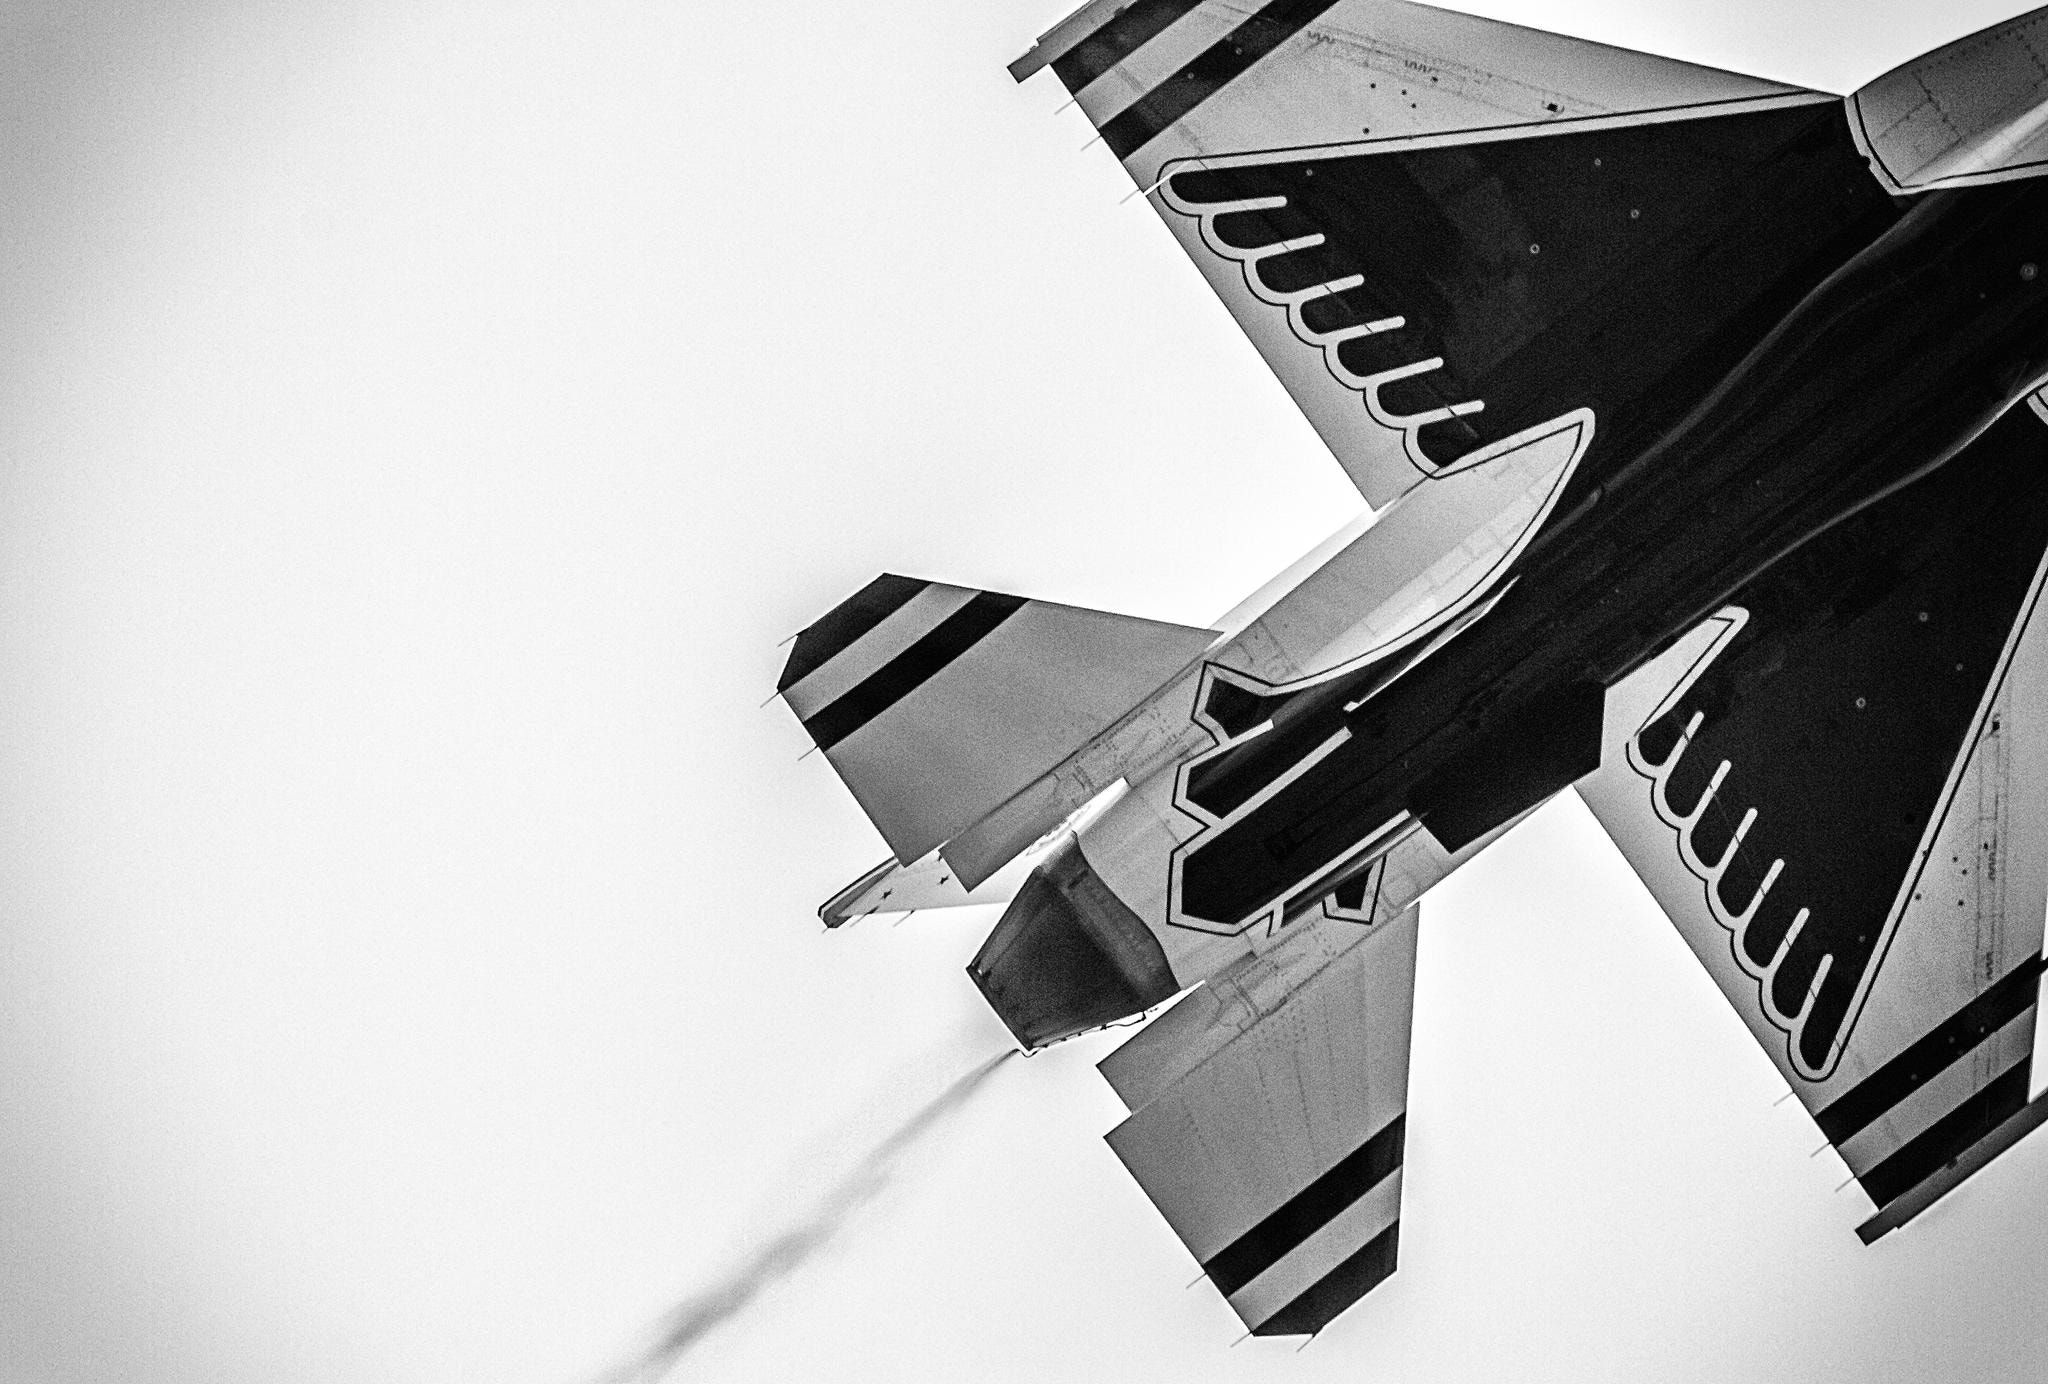 F16+Thundrbird+Black+and+White++F16+US+Air+Force